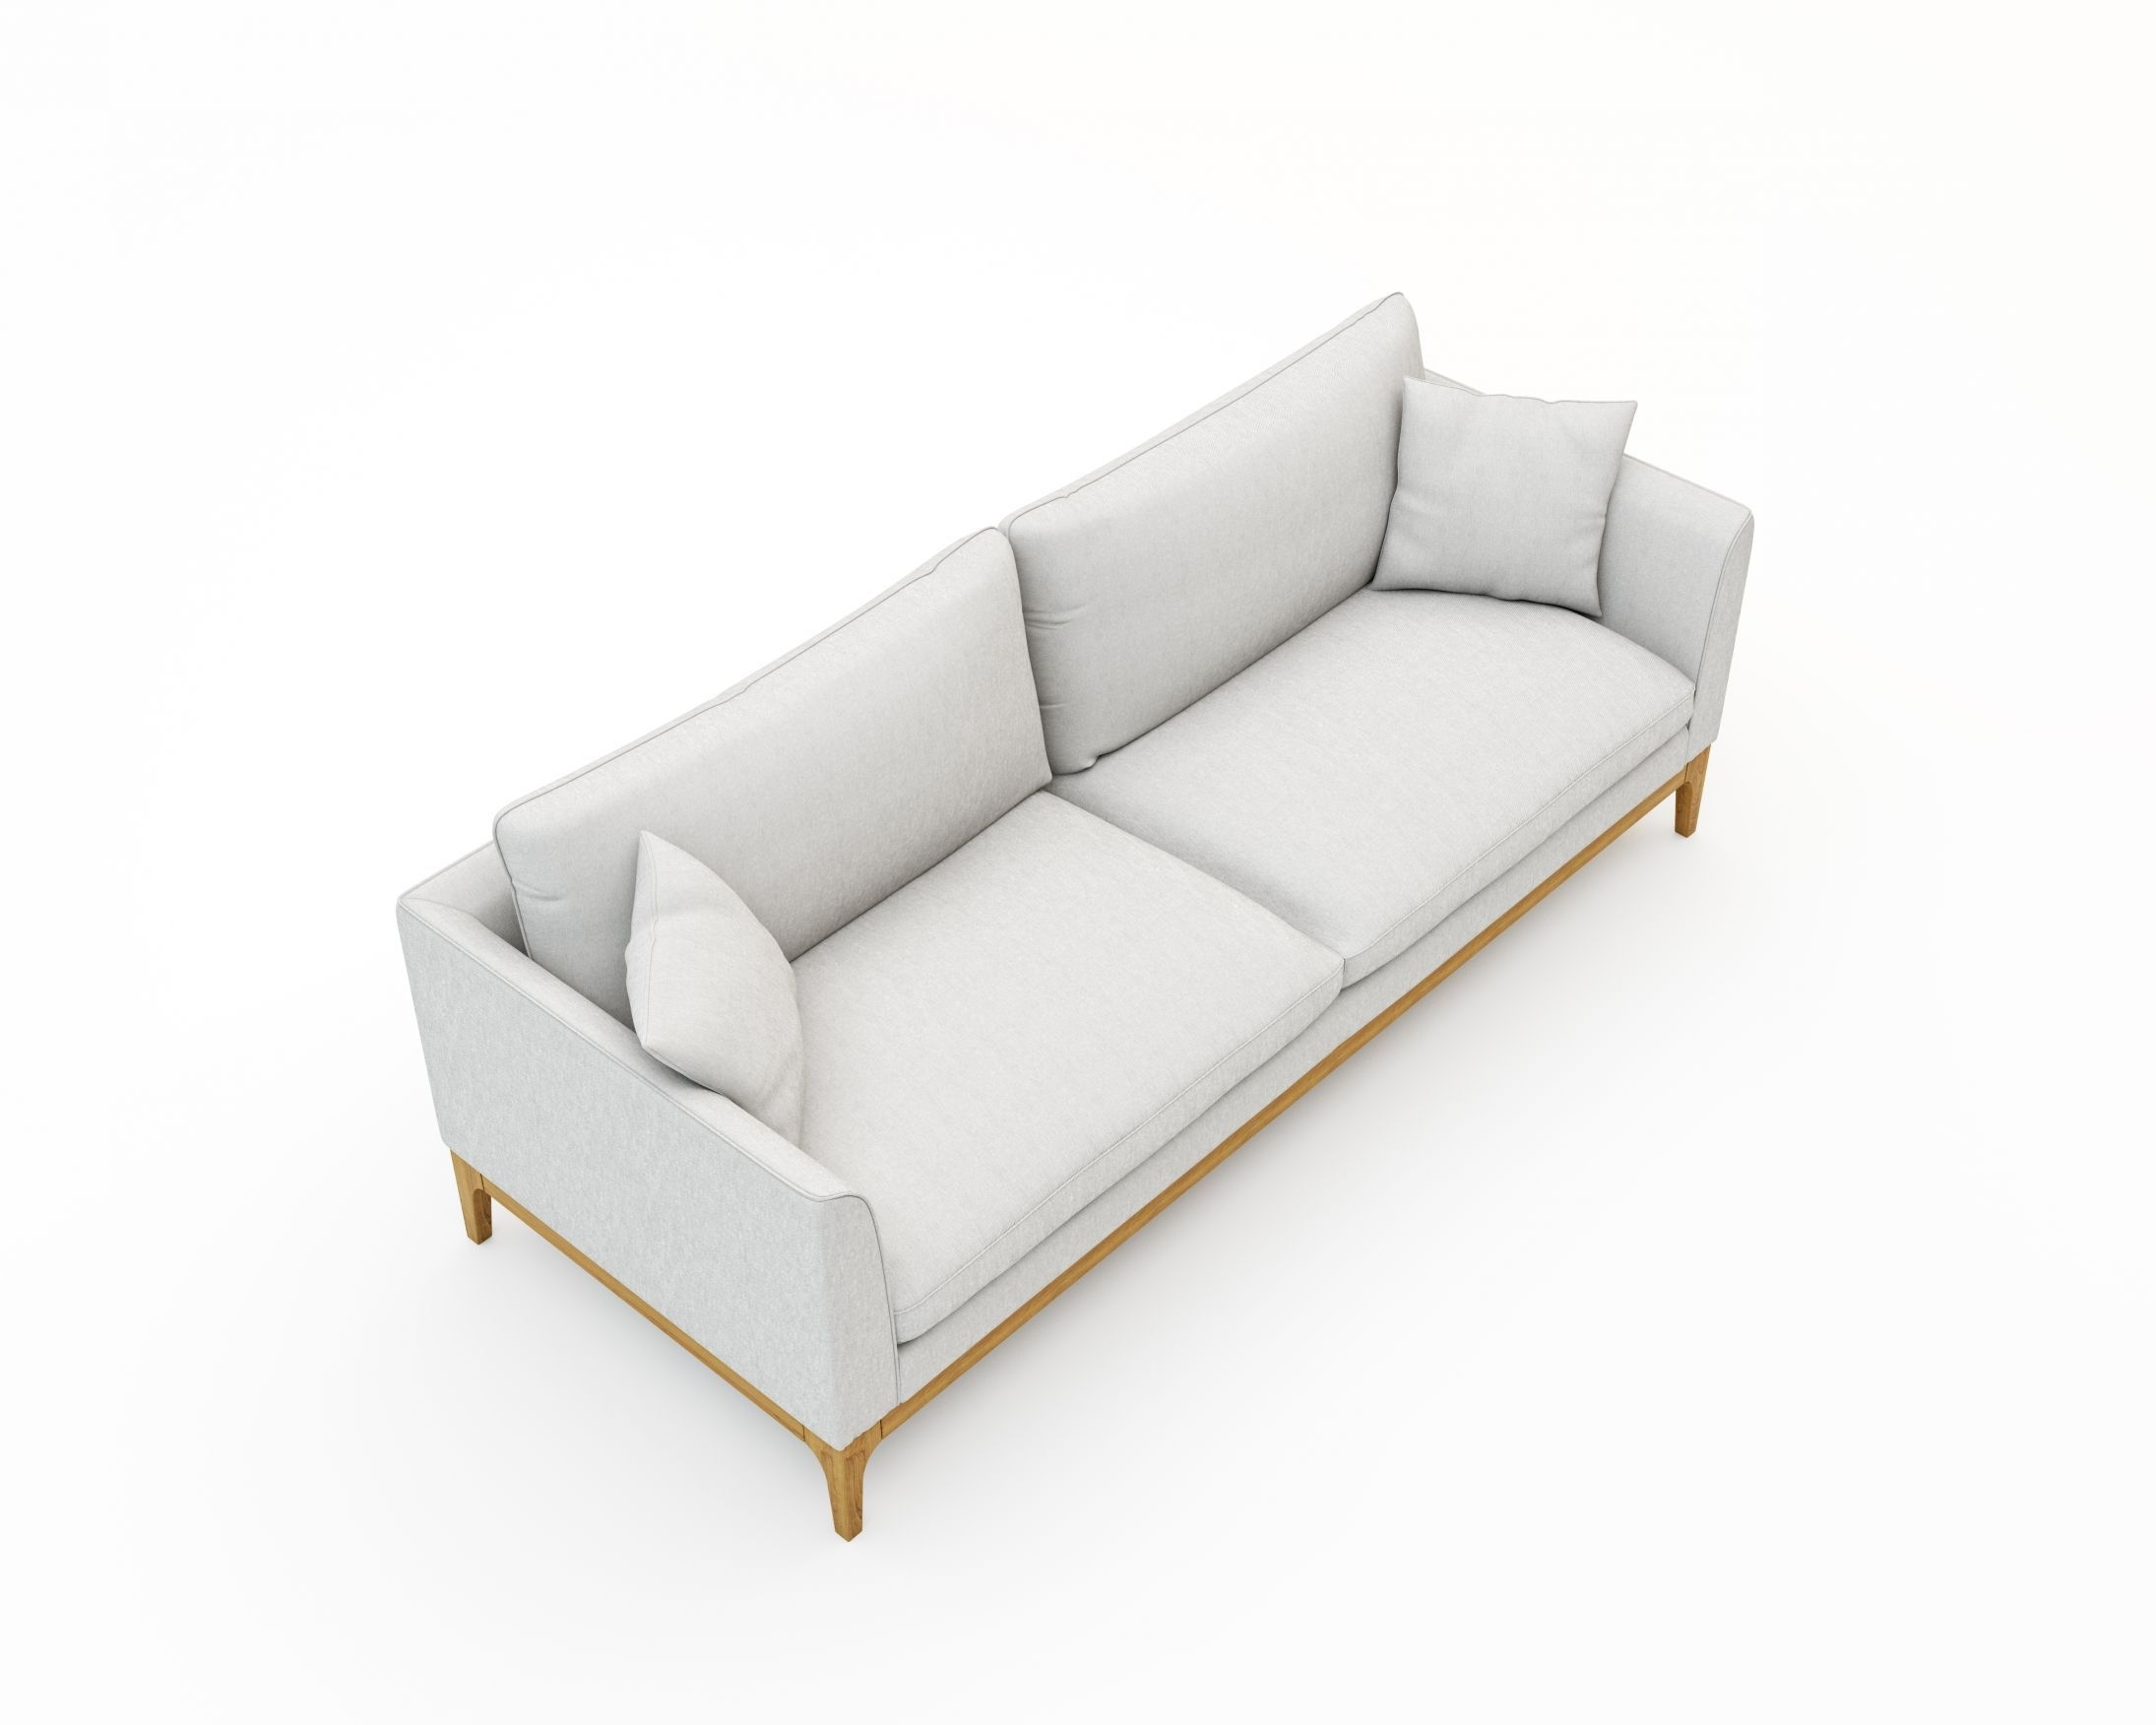 Loren Sofa | Rove Concepts Kure Mid Century Furniture | Pinterest Regarding Nico Grey Sectionals With Left Facing Storage Chaise (Image 11 of 25)